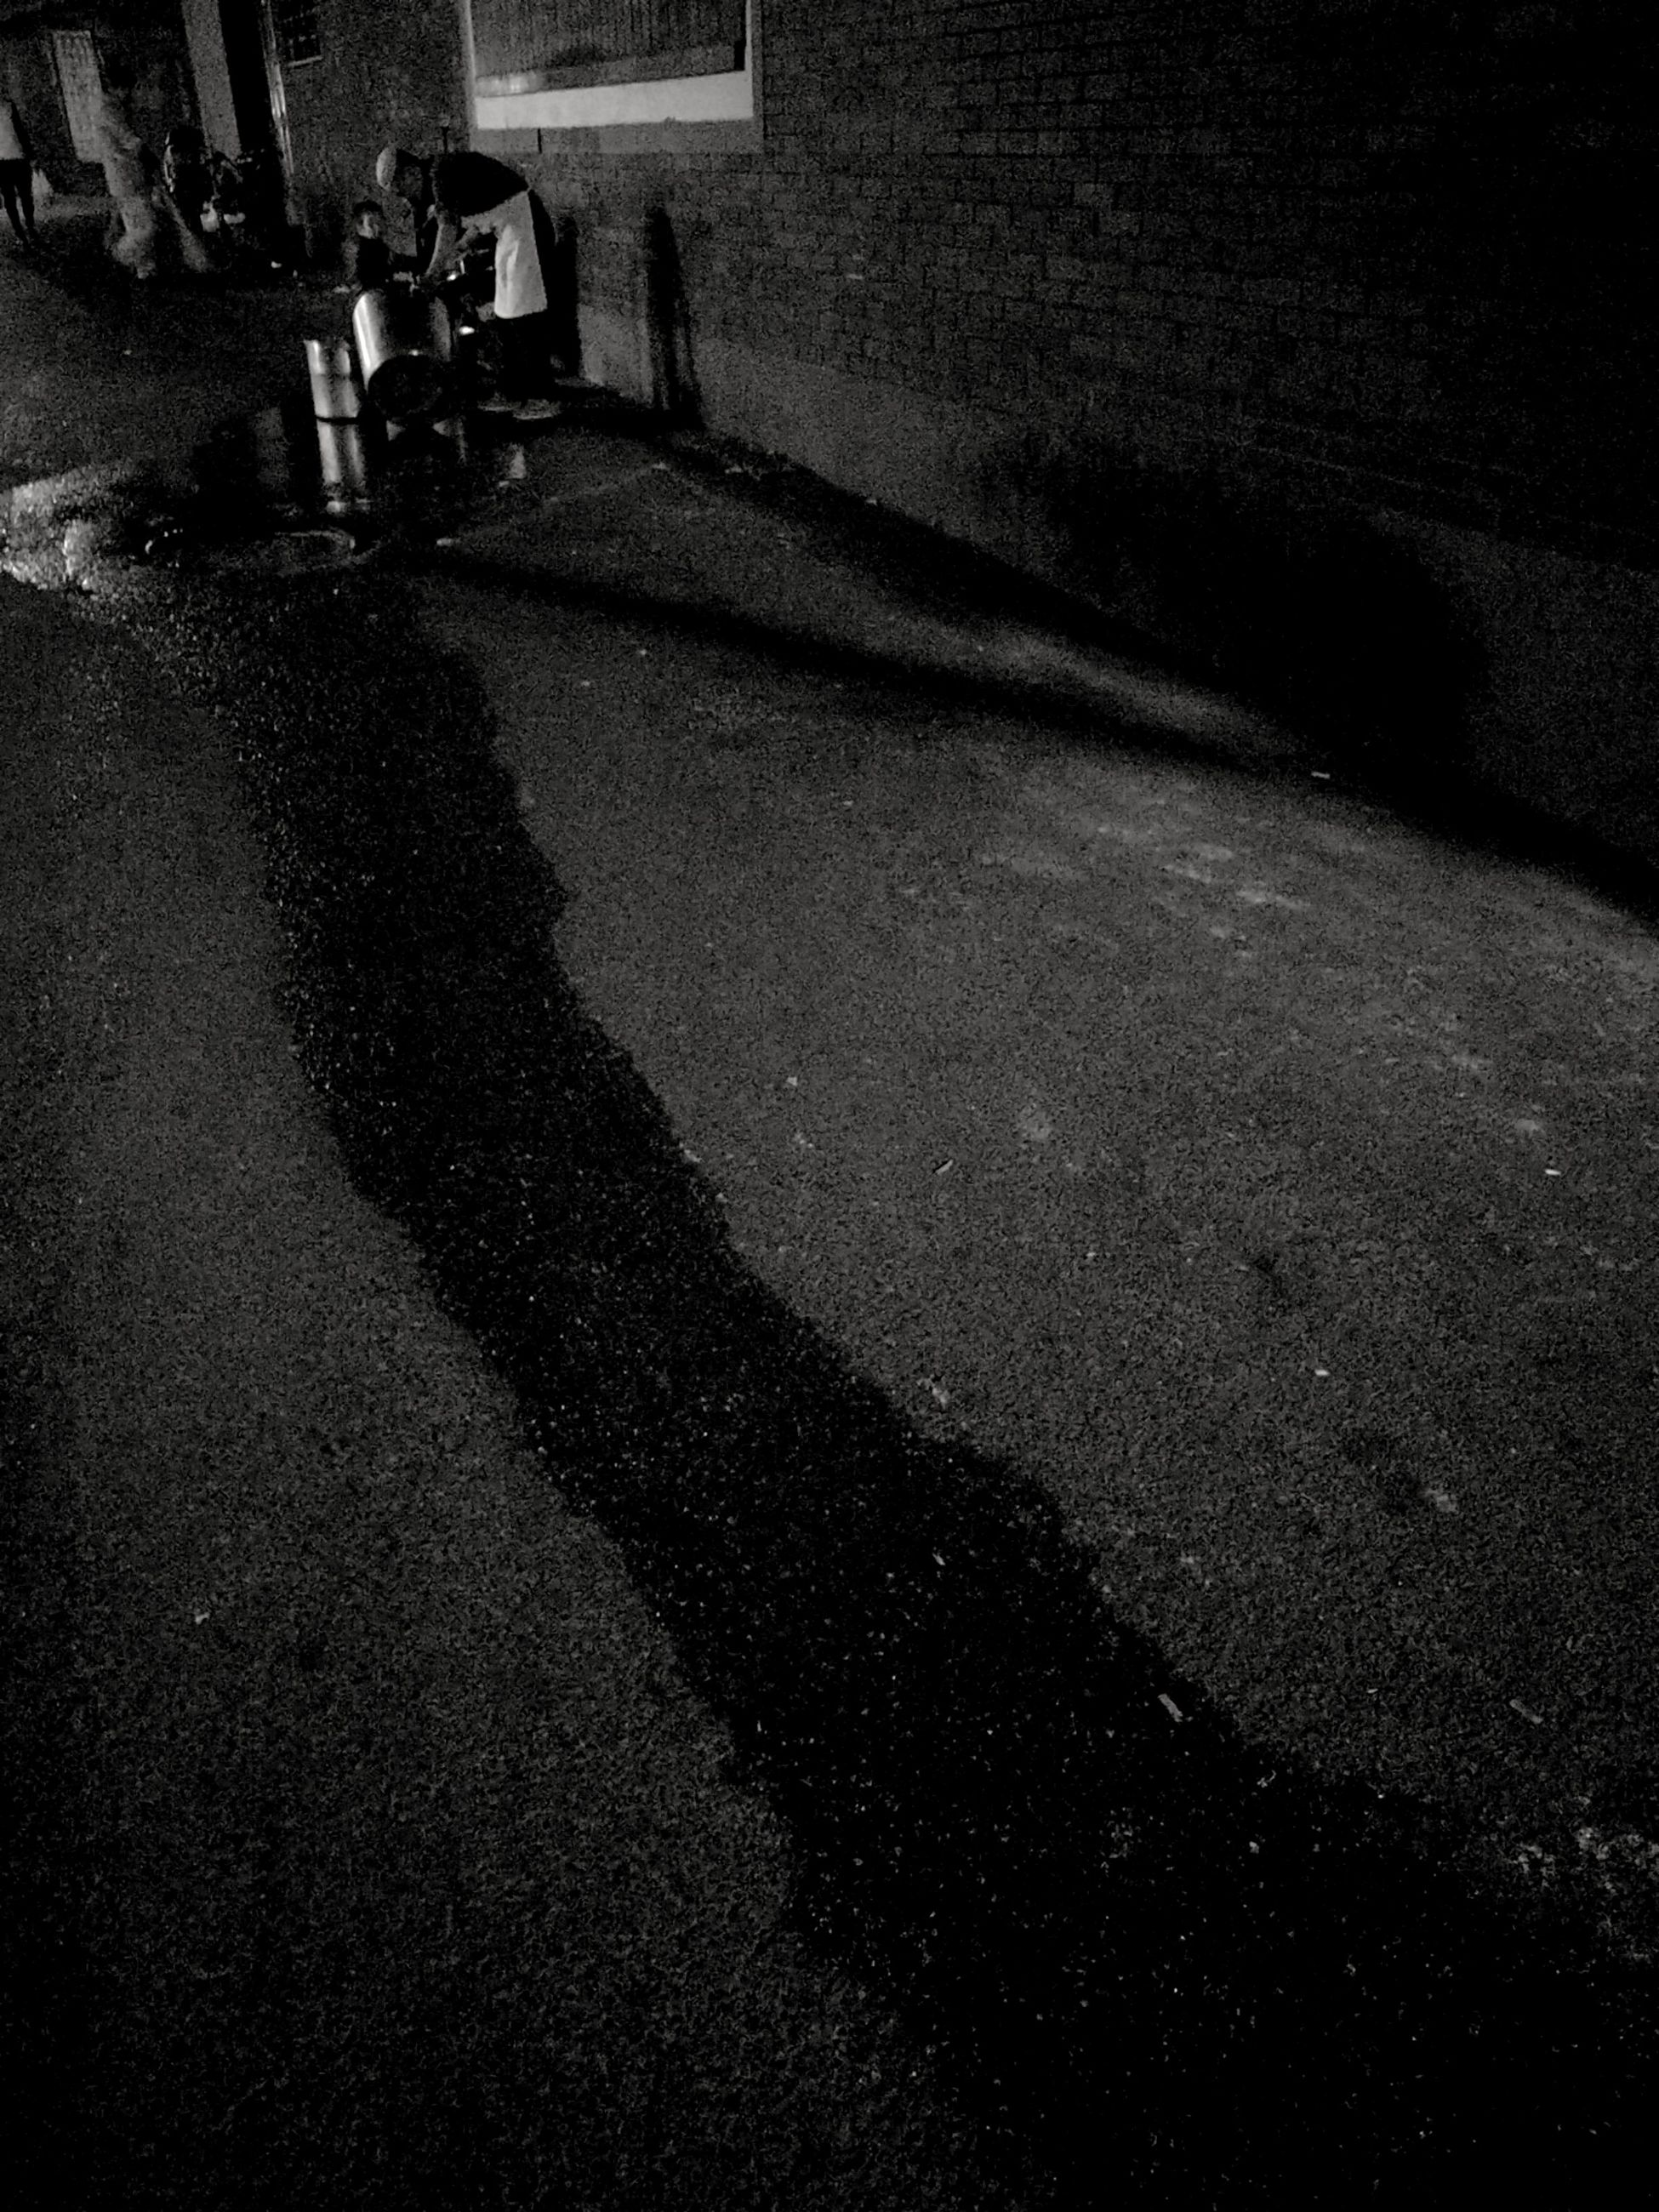 real people, lifestyles, night, walking, one person, shadow, men, outdoors, architecture, nature, people